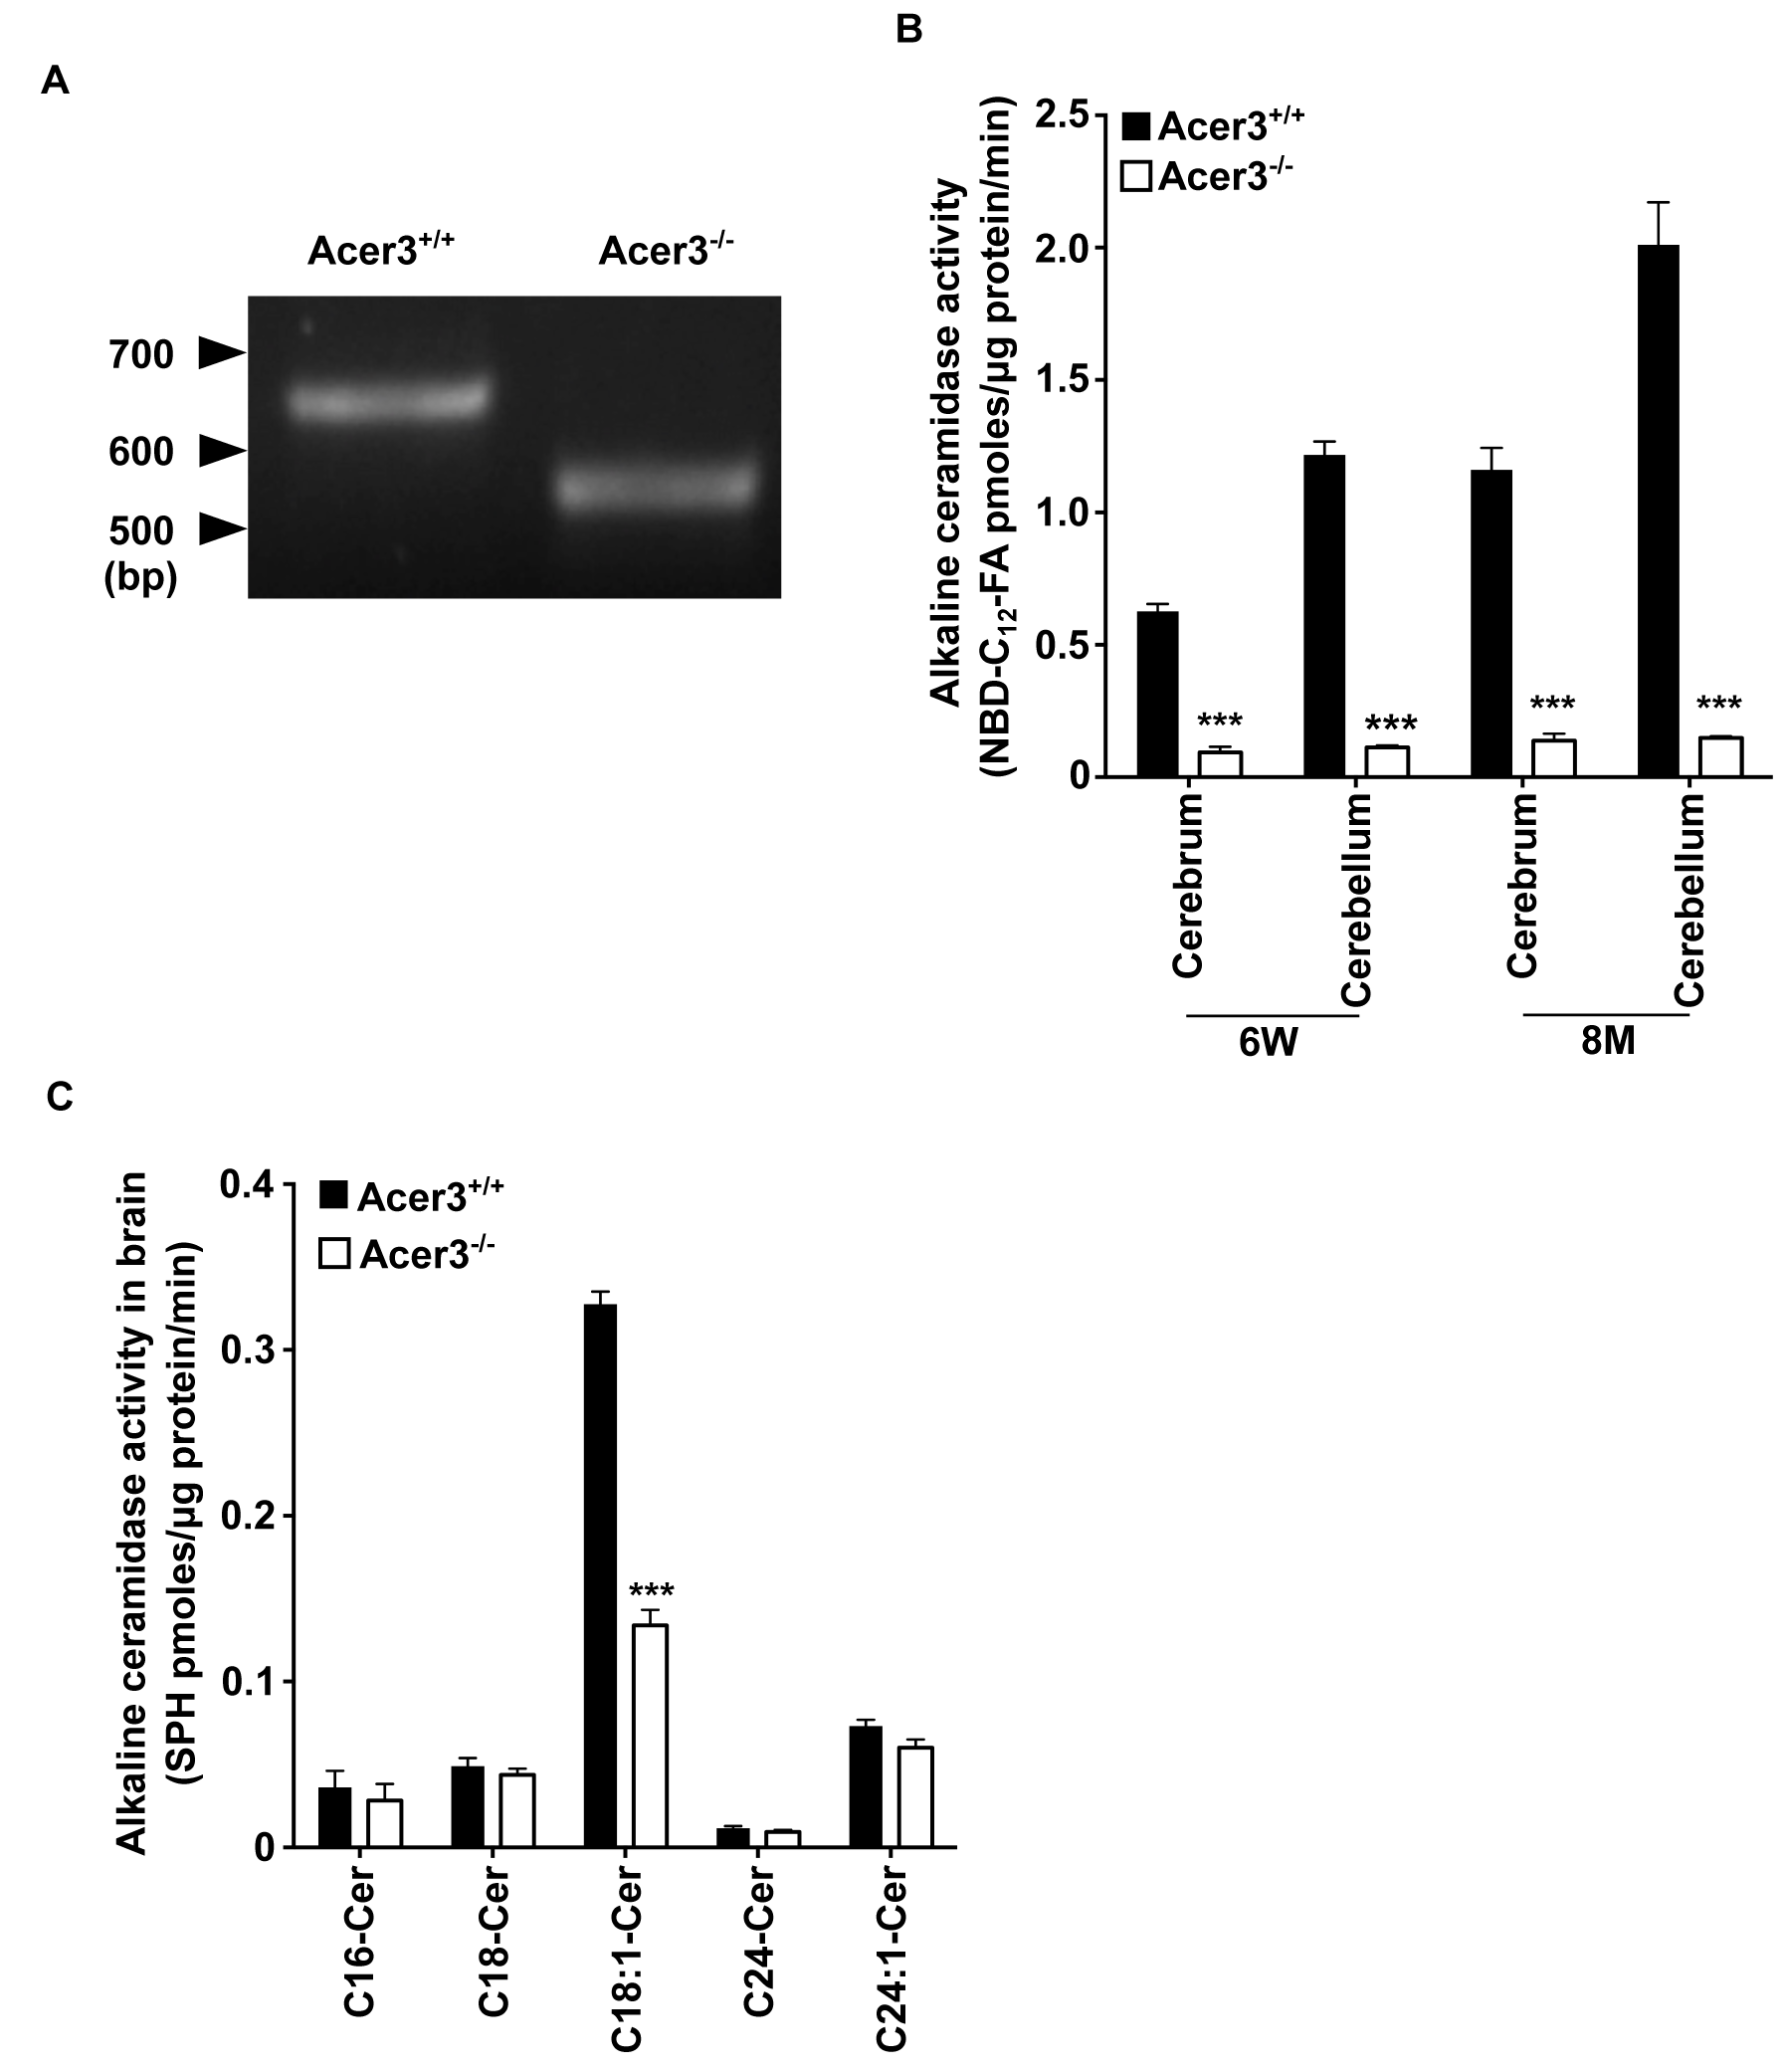 Acer3 knockout decreases alkaline ceramidase activity on ULCC in the brain.